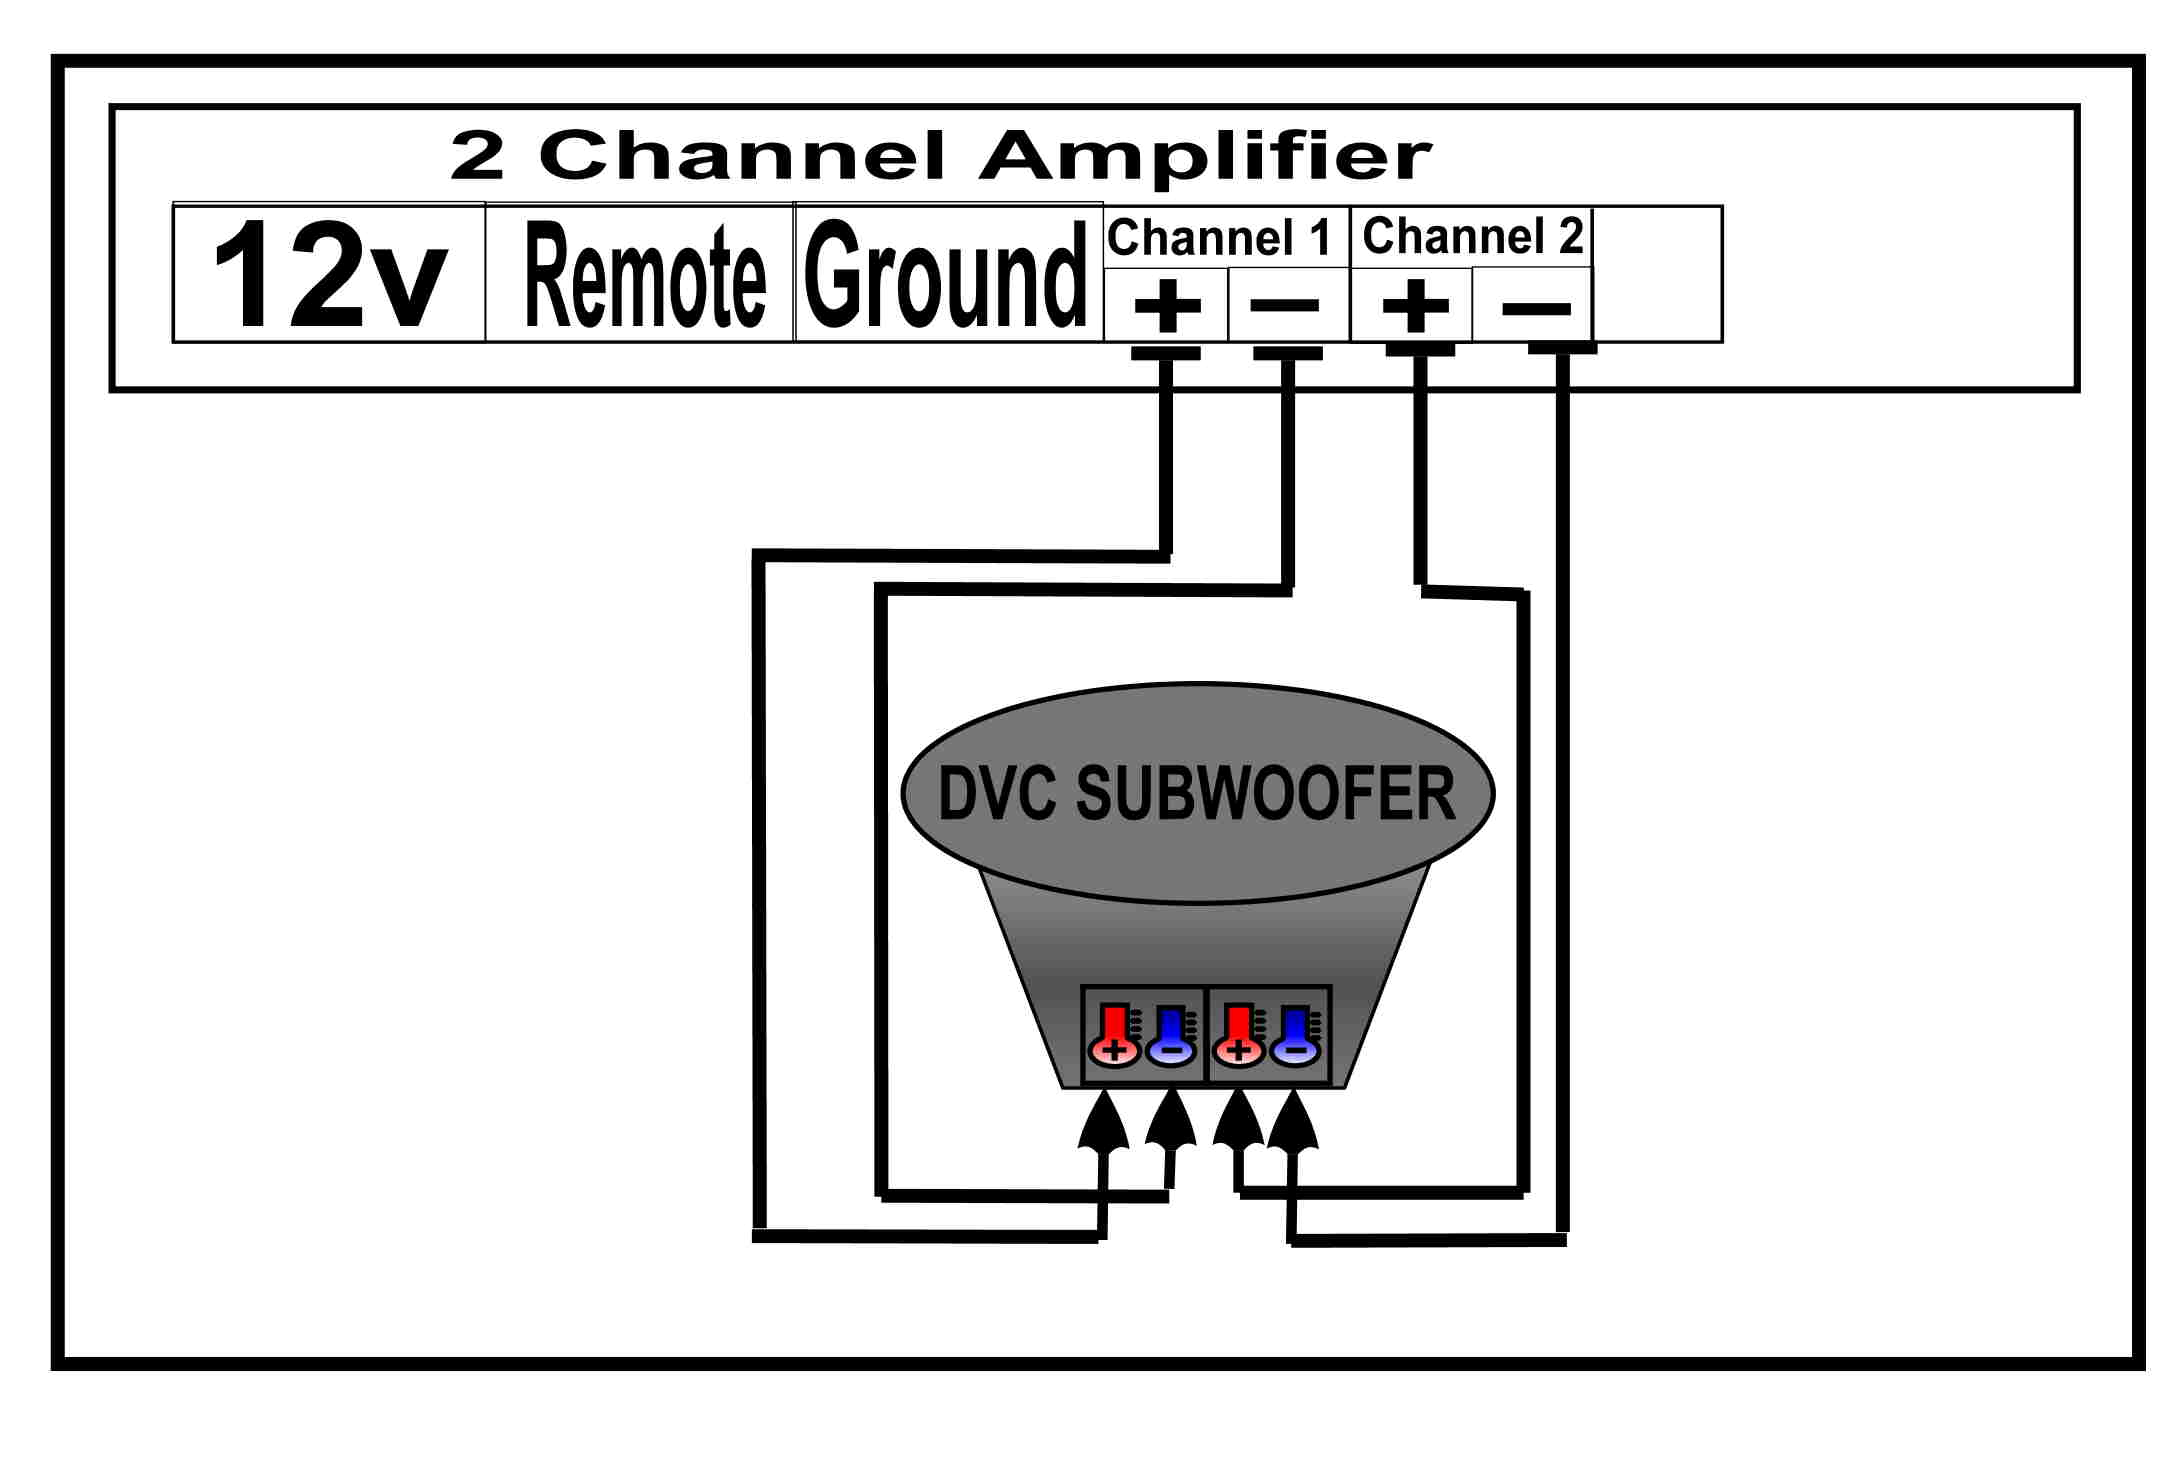 DVC to 2 Channel Amplifier help with wiring my audiobahn aw 1200 q and spl 460 phantom amplifier audiobahn aw1200q wiring diagram at mifinder.co